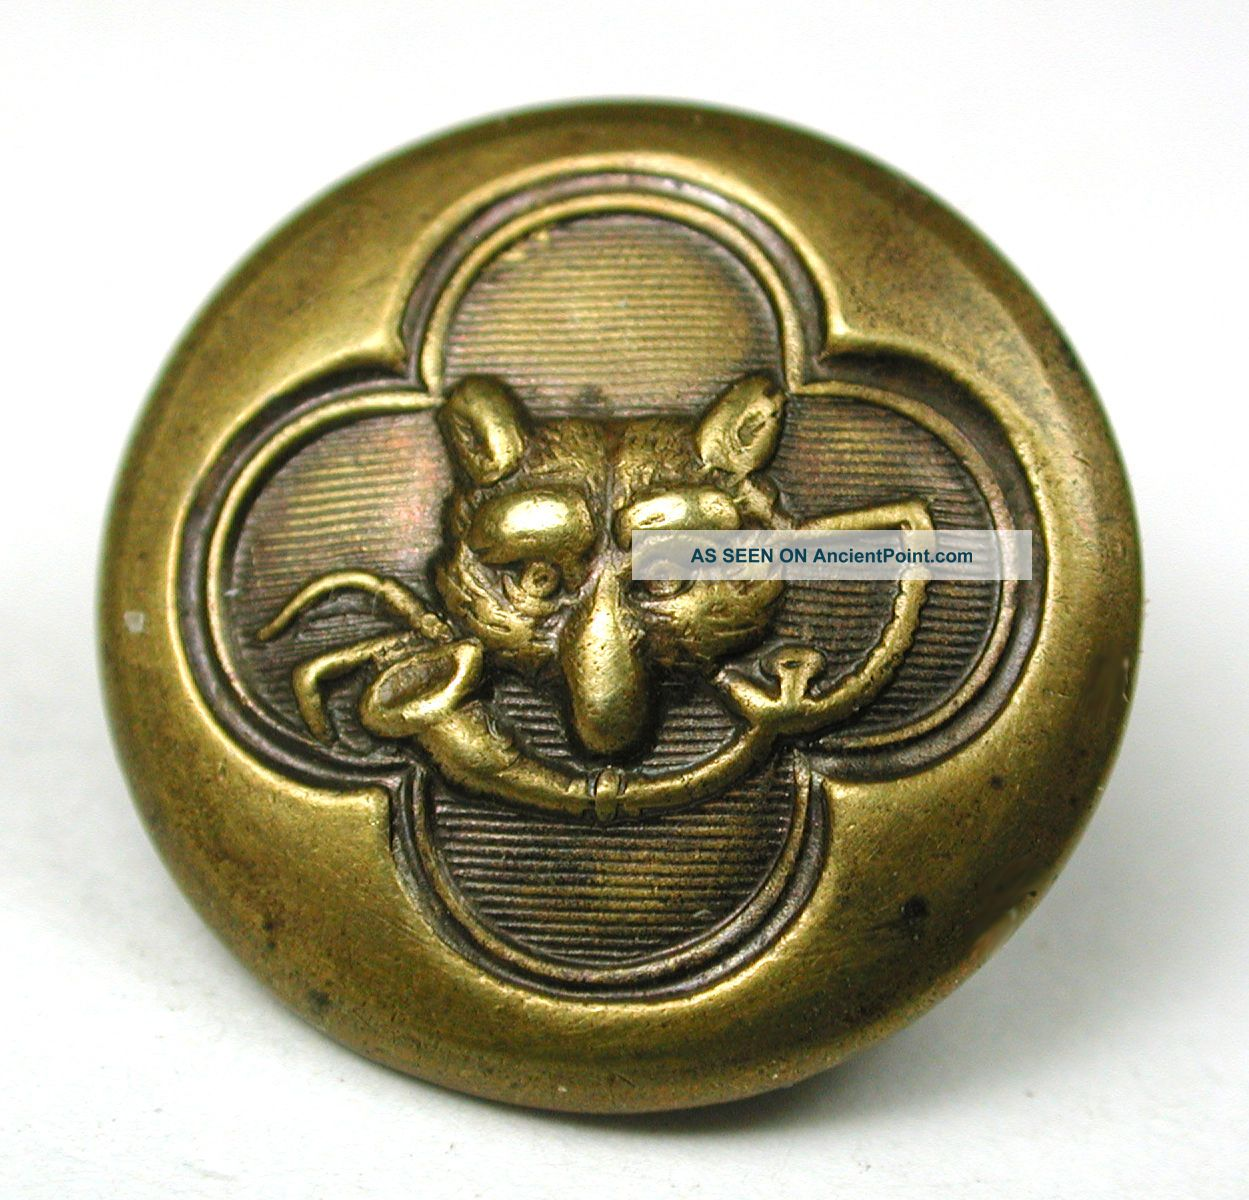 Antique Brass Sporting Button Fox Head Design - 5/8